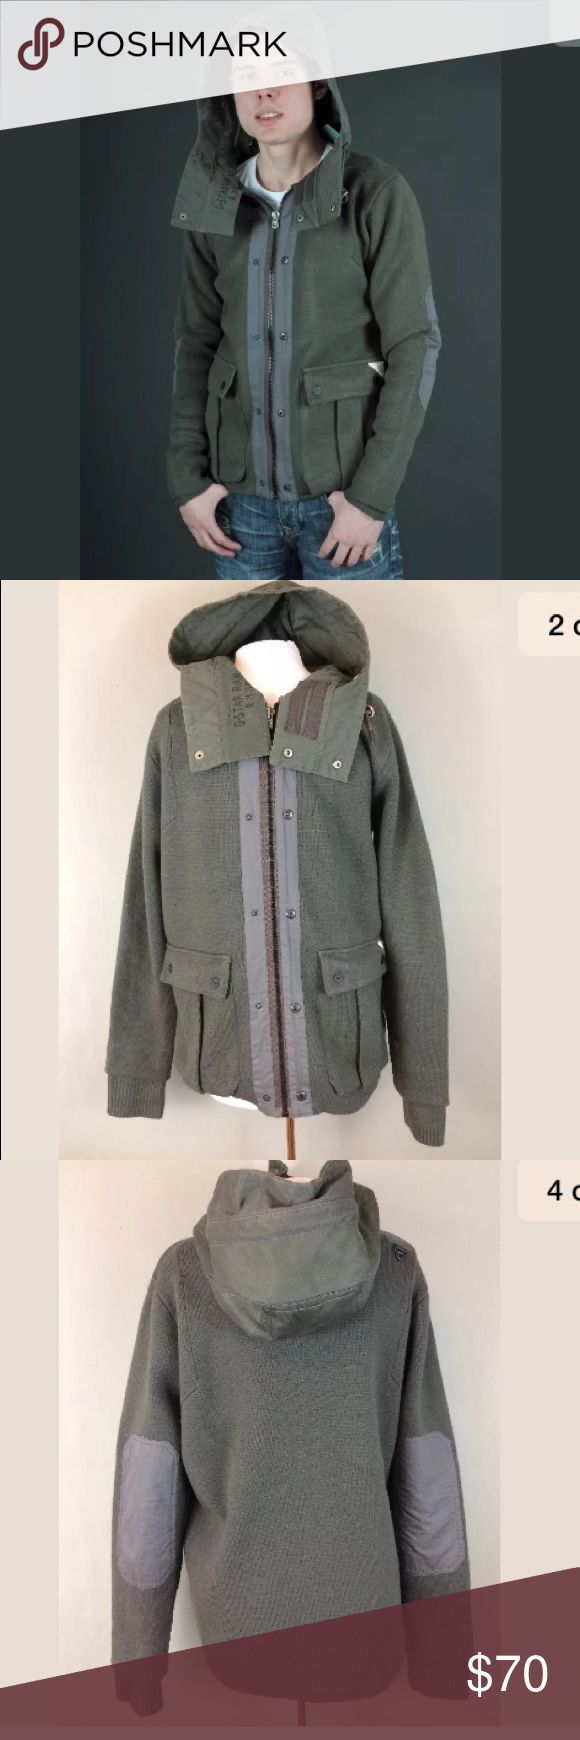 """G Star raw hooded knit jacket Pre owned g Star raw olive green Etna hooded knit jacket, size XL. Full zip front.   Armpit to armpit-22.5""""  Armpit to hem-19.5"""" g star Jackets & Coats"""